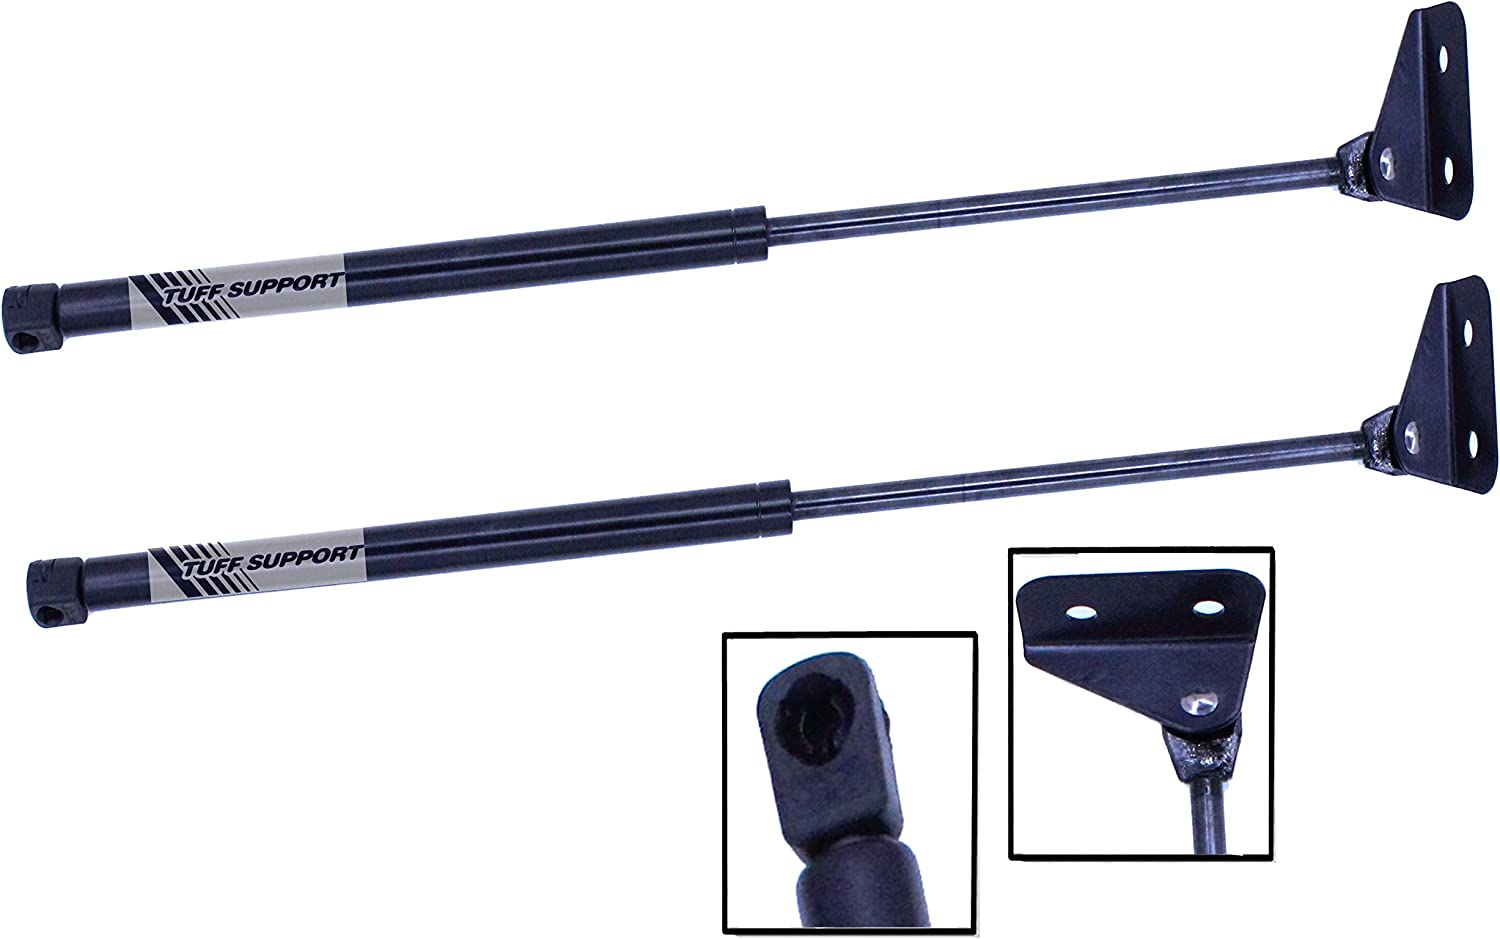 2 Pieces Tuff Support Hatch Lift Supports 1979 To 1985 Mazda RX7 Fits RX7 with Rear Defroster /& Wipers SET